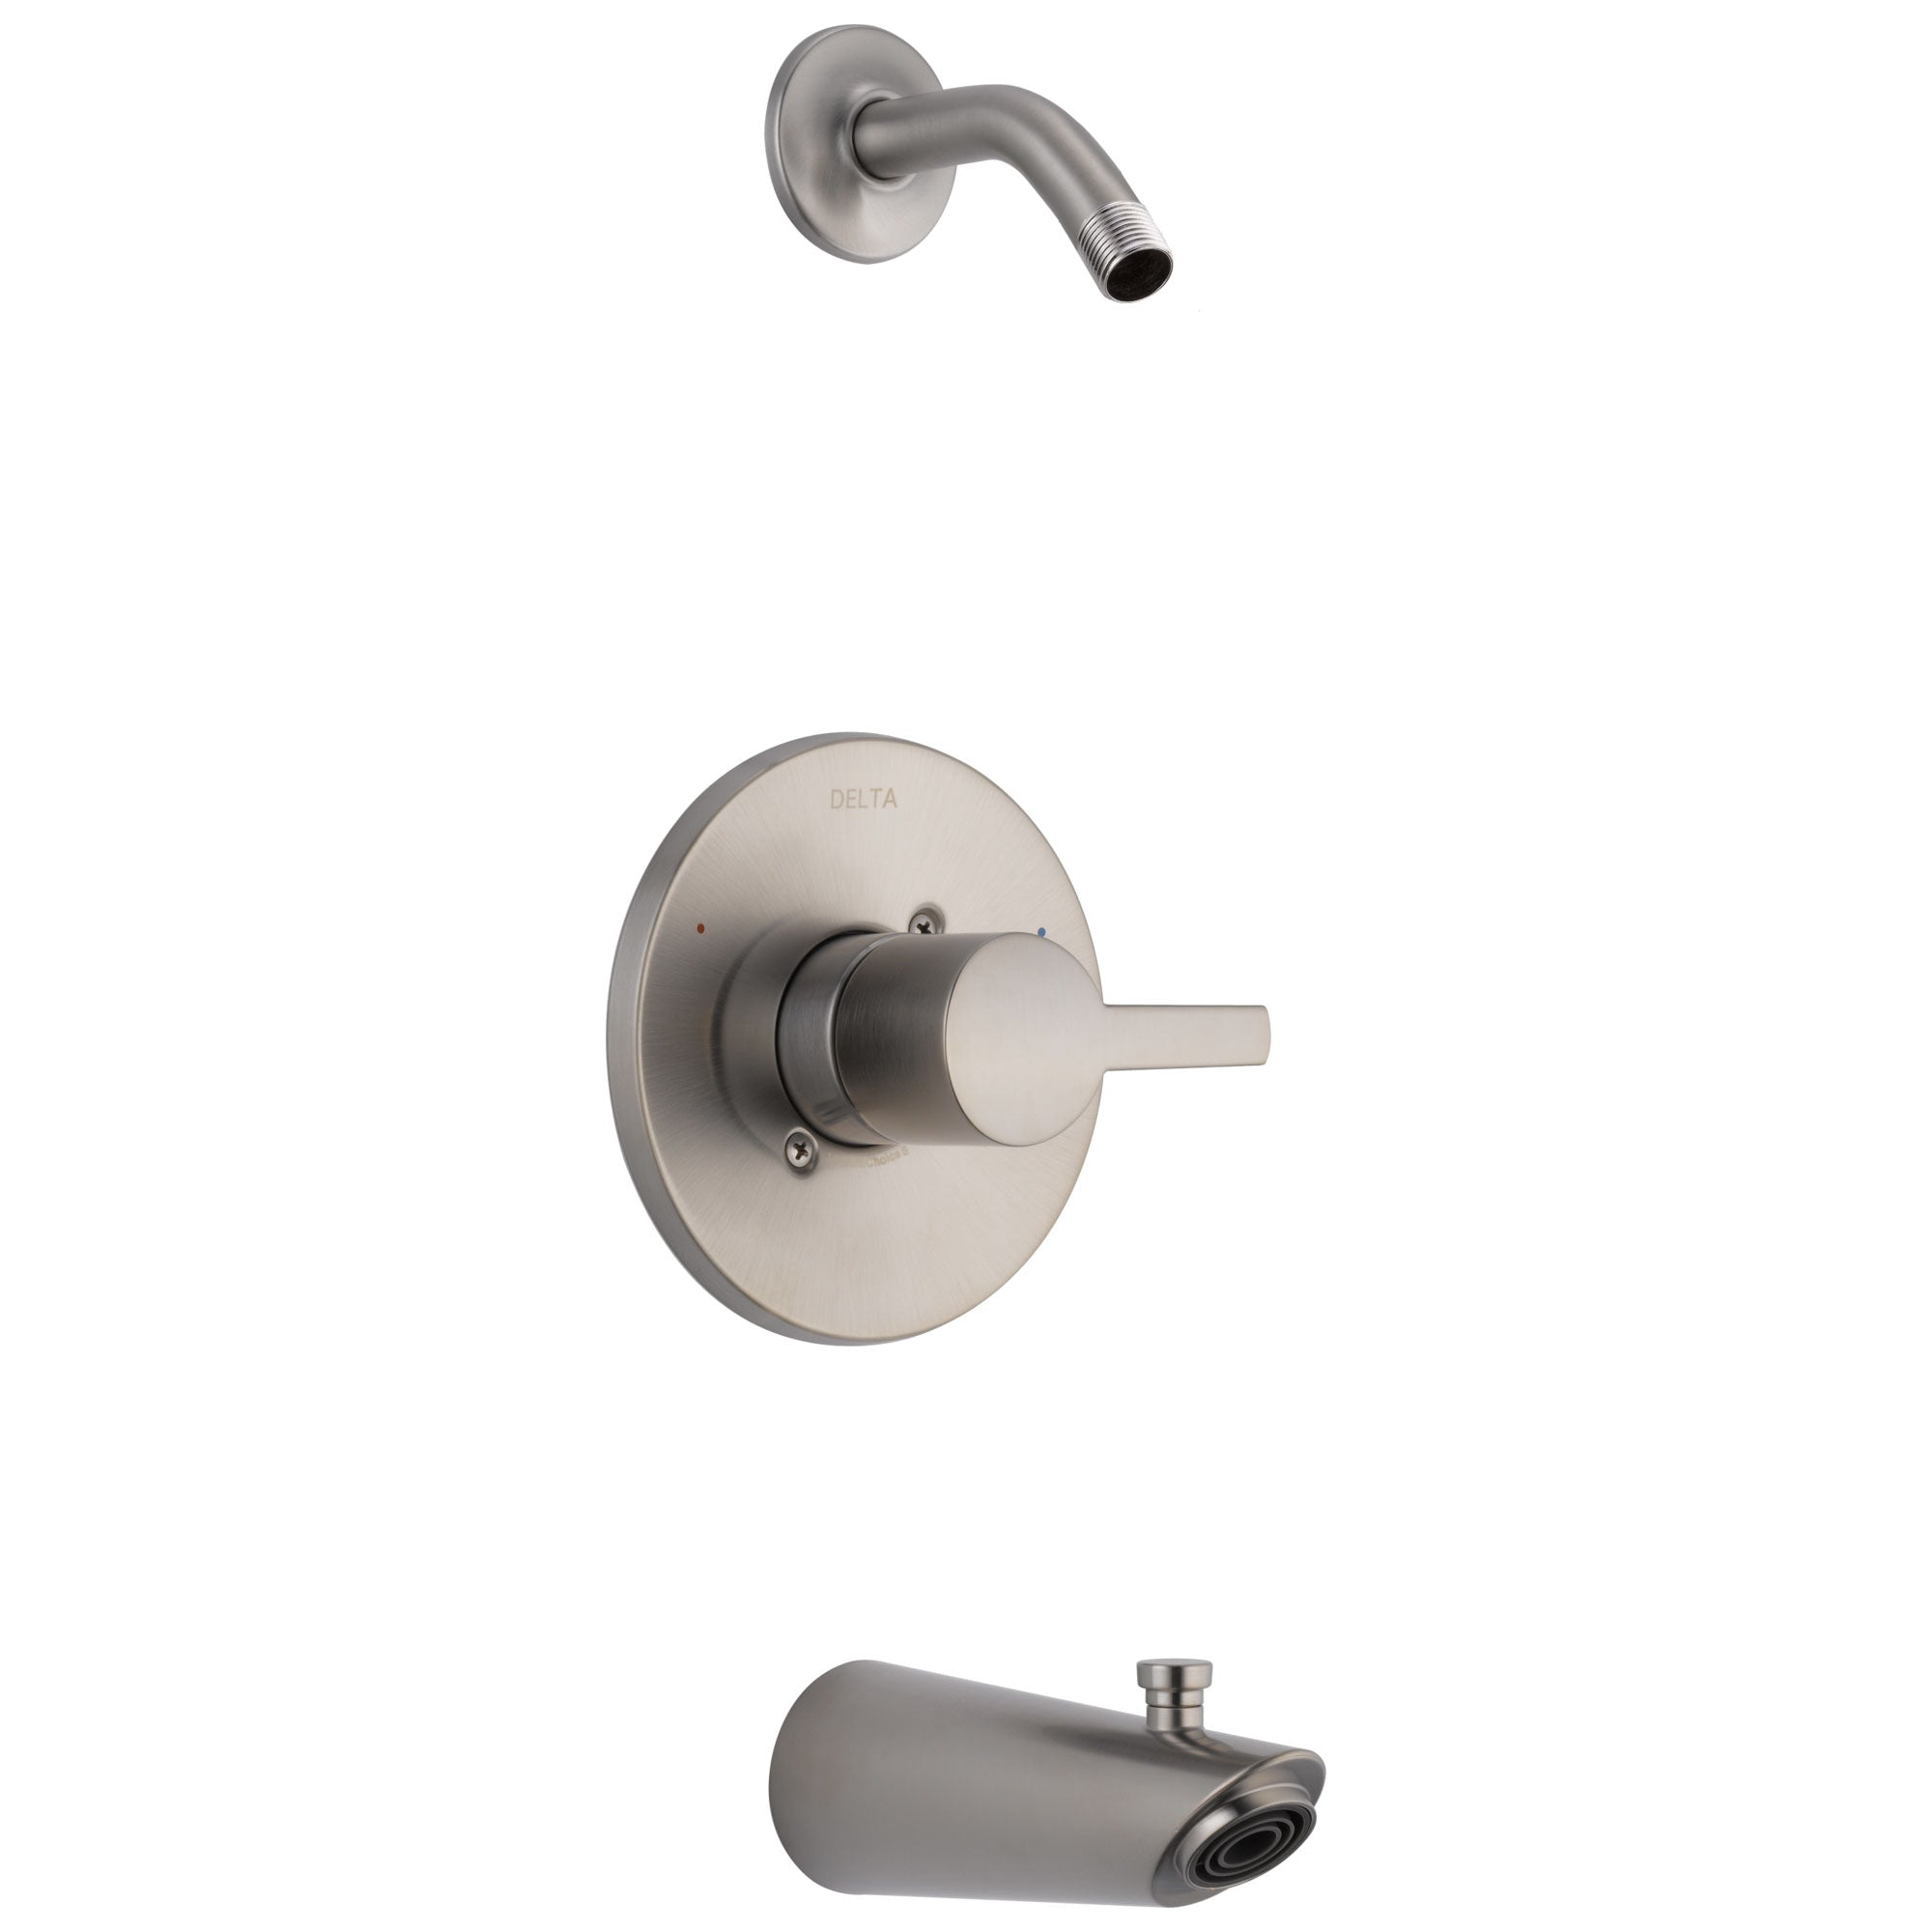 Delta Compel Collection Stainless Steel Finish Monitor 14 Modern Tub & Shower Combination Faucet Trim - Less Showerhead Includes Valve without Stops D2393V